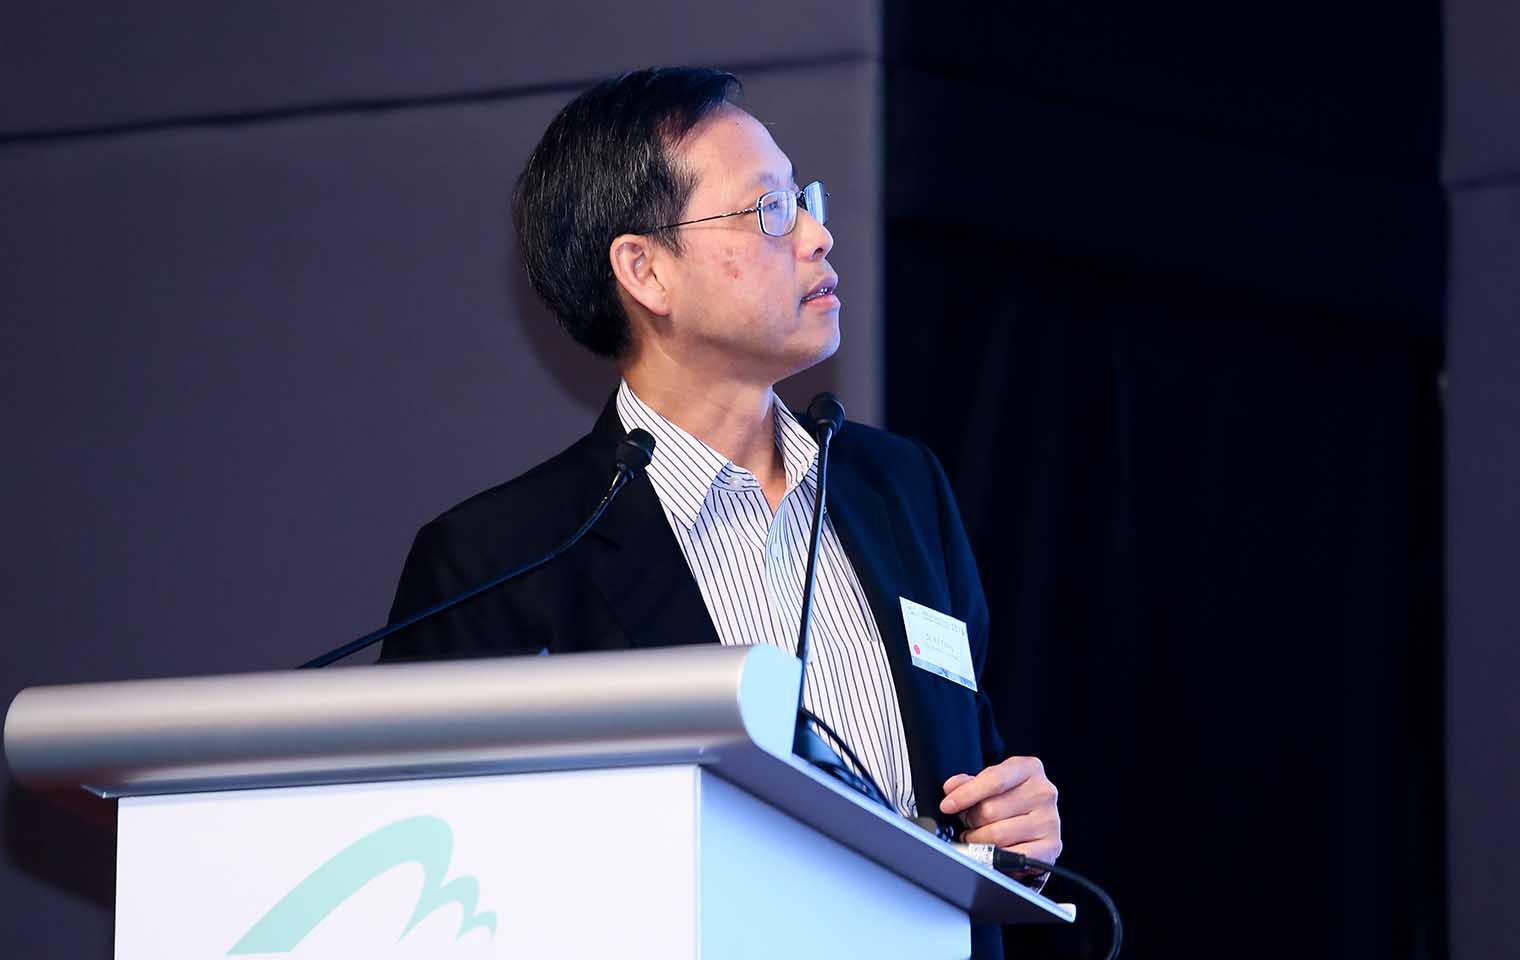 <strong>Dr. K F Tsang</strong><br>City University of Hong Kong